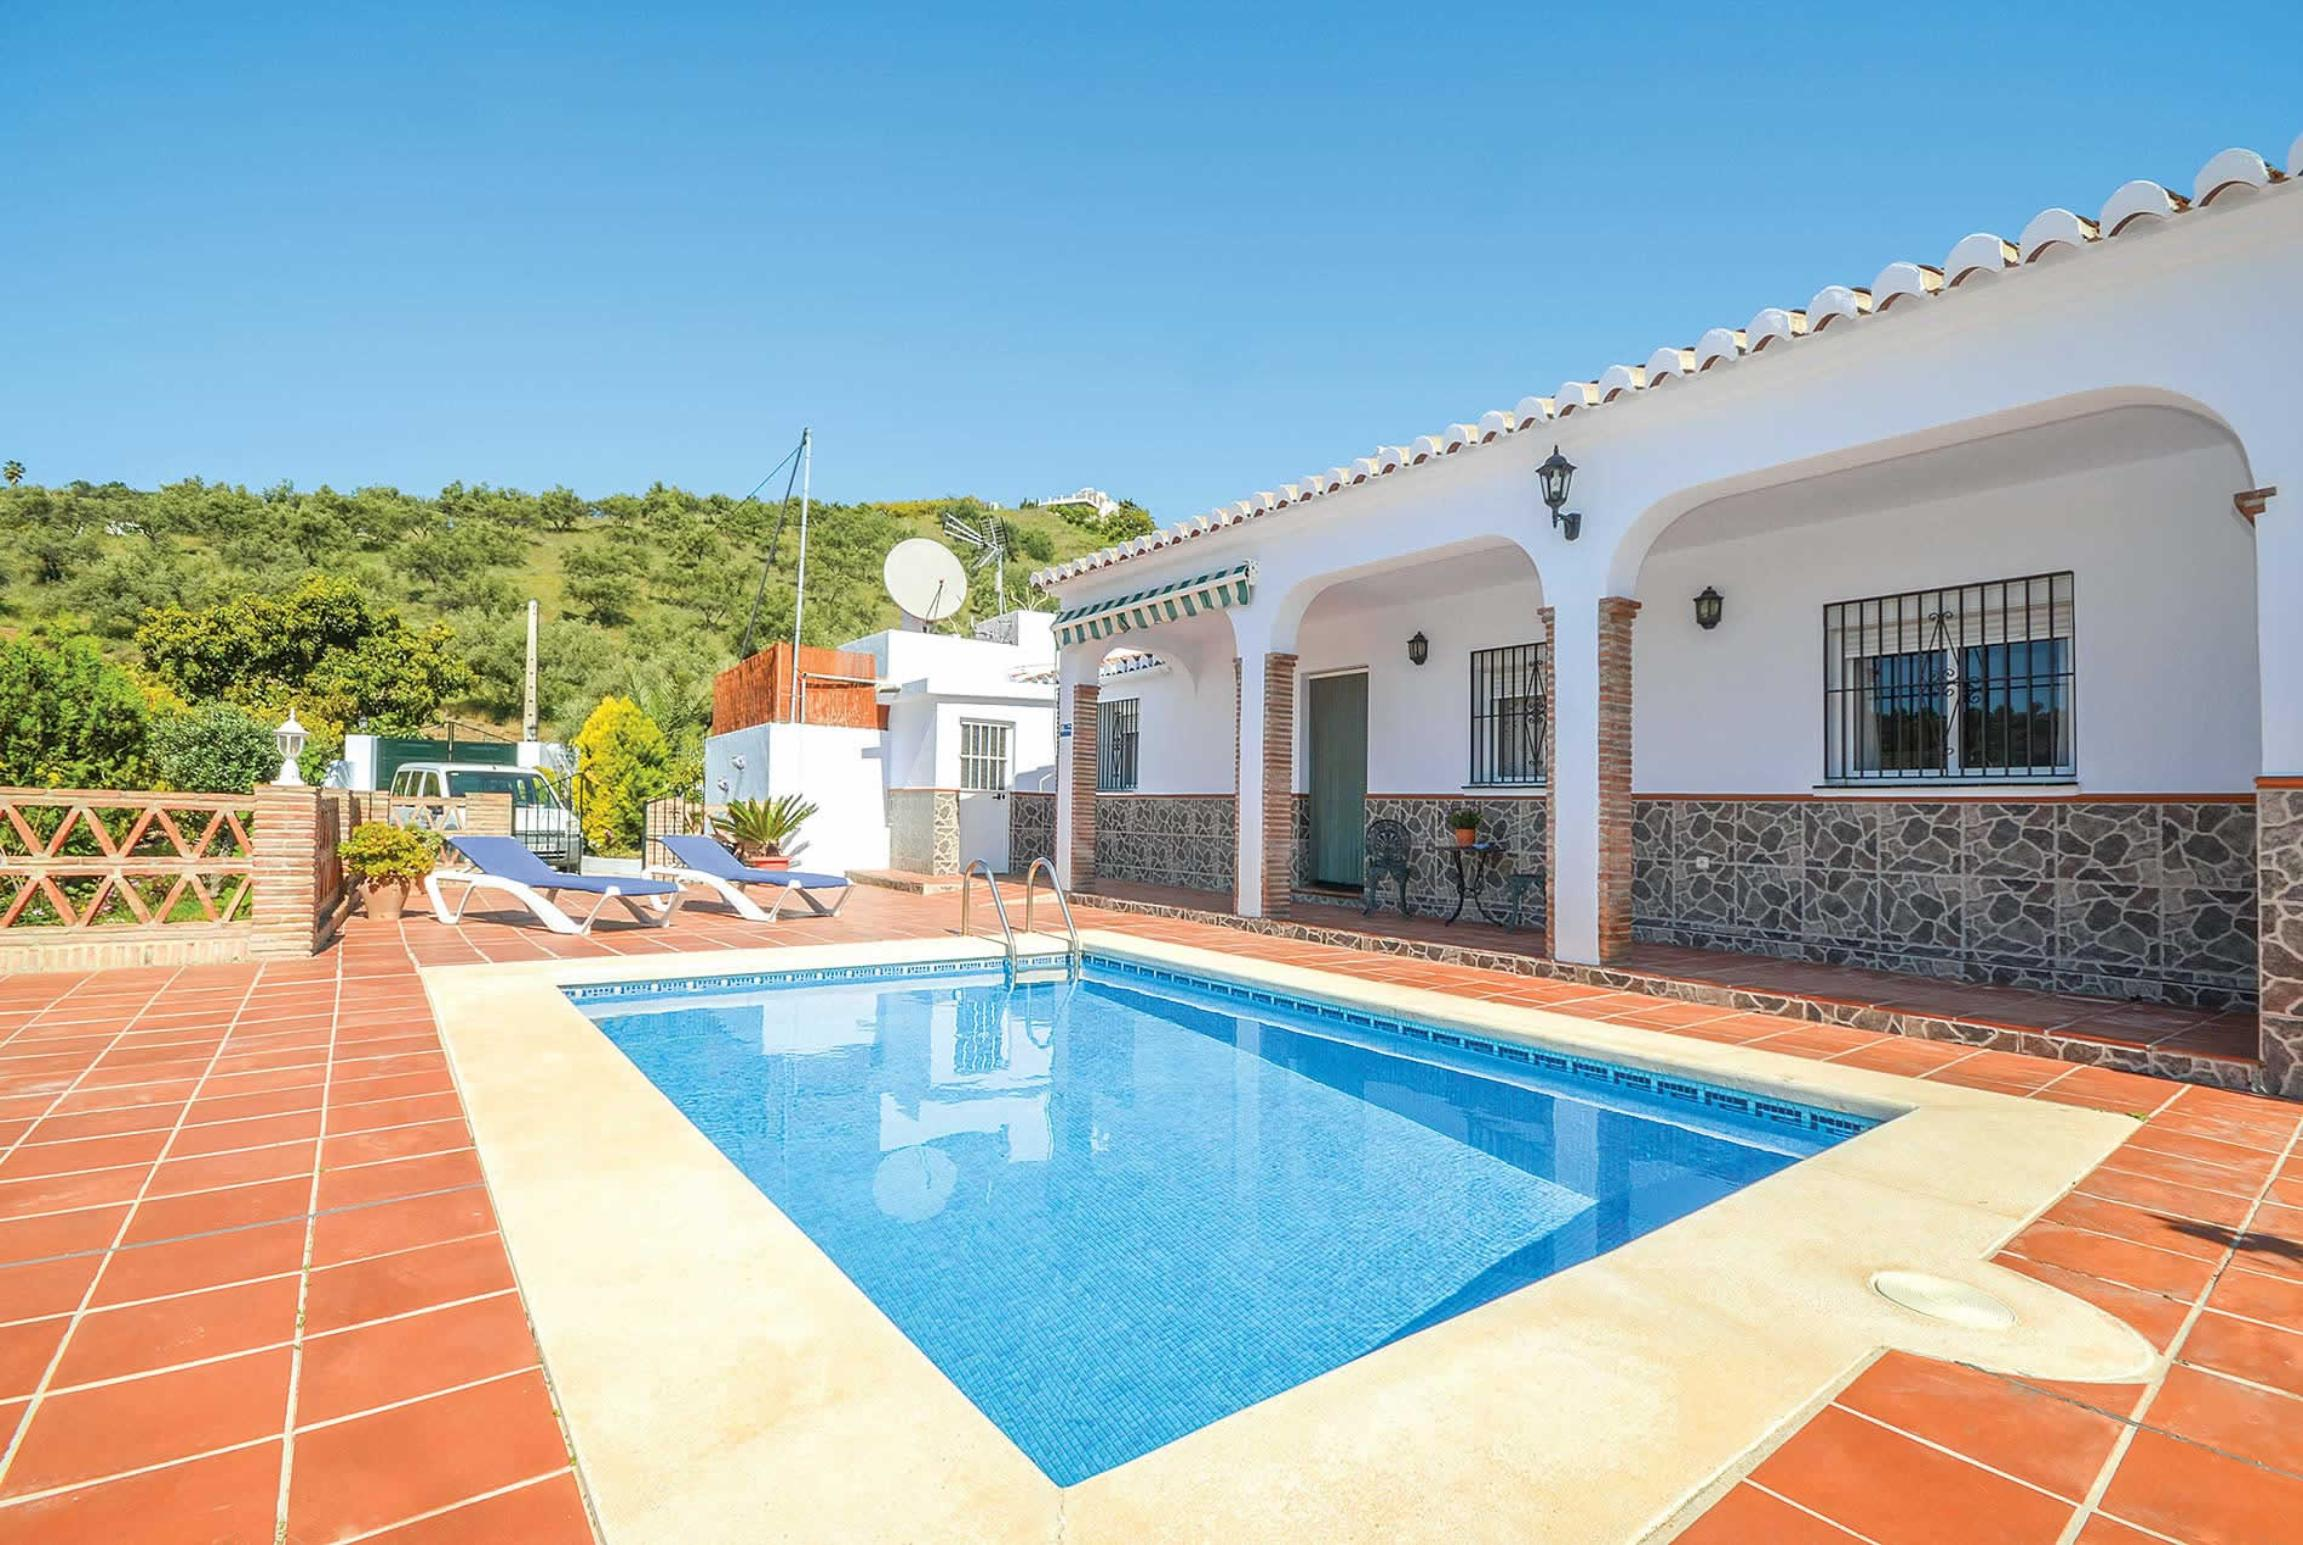 Read more about Cortijo del Abuelo villa